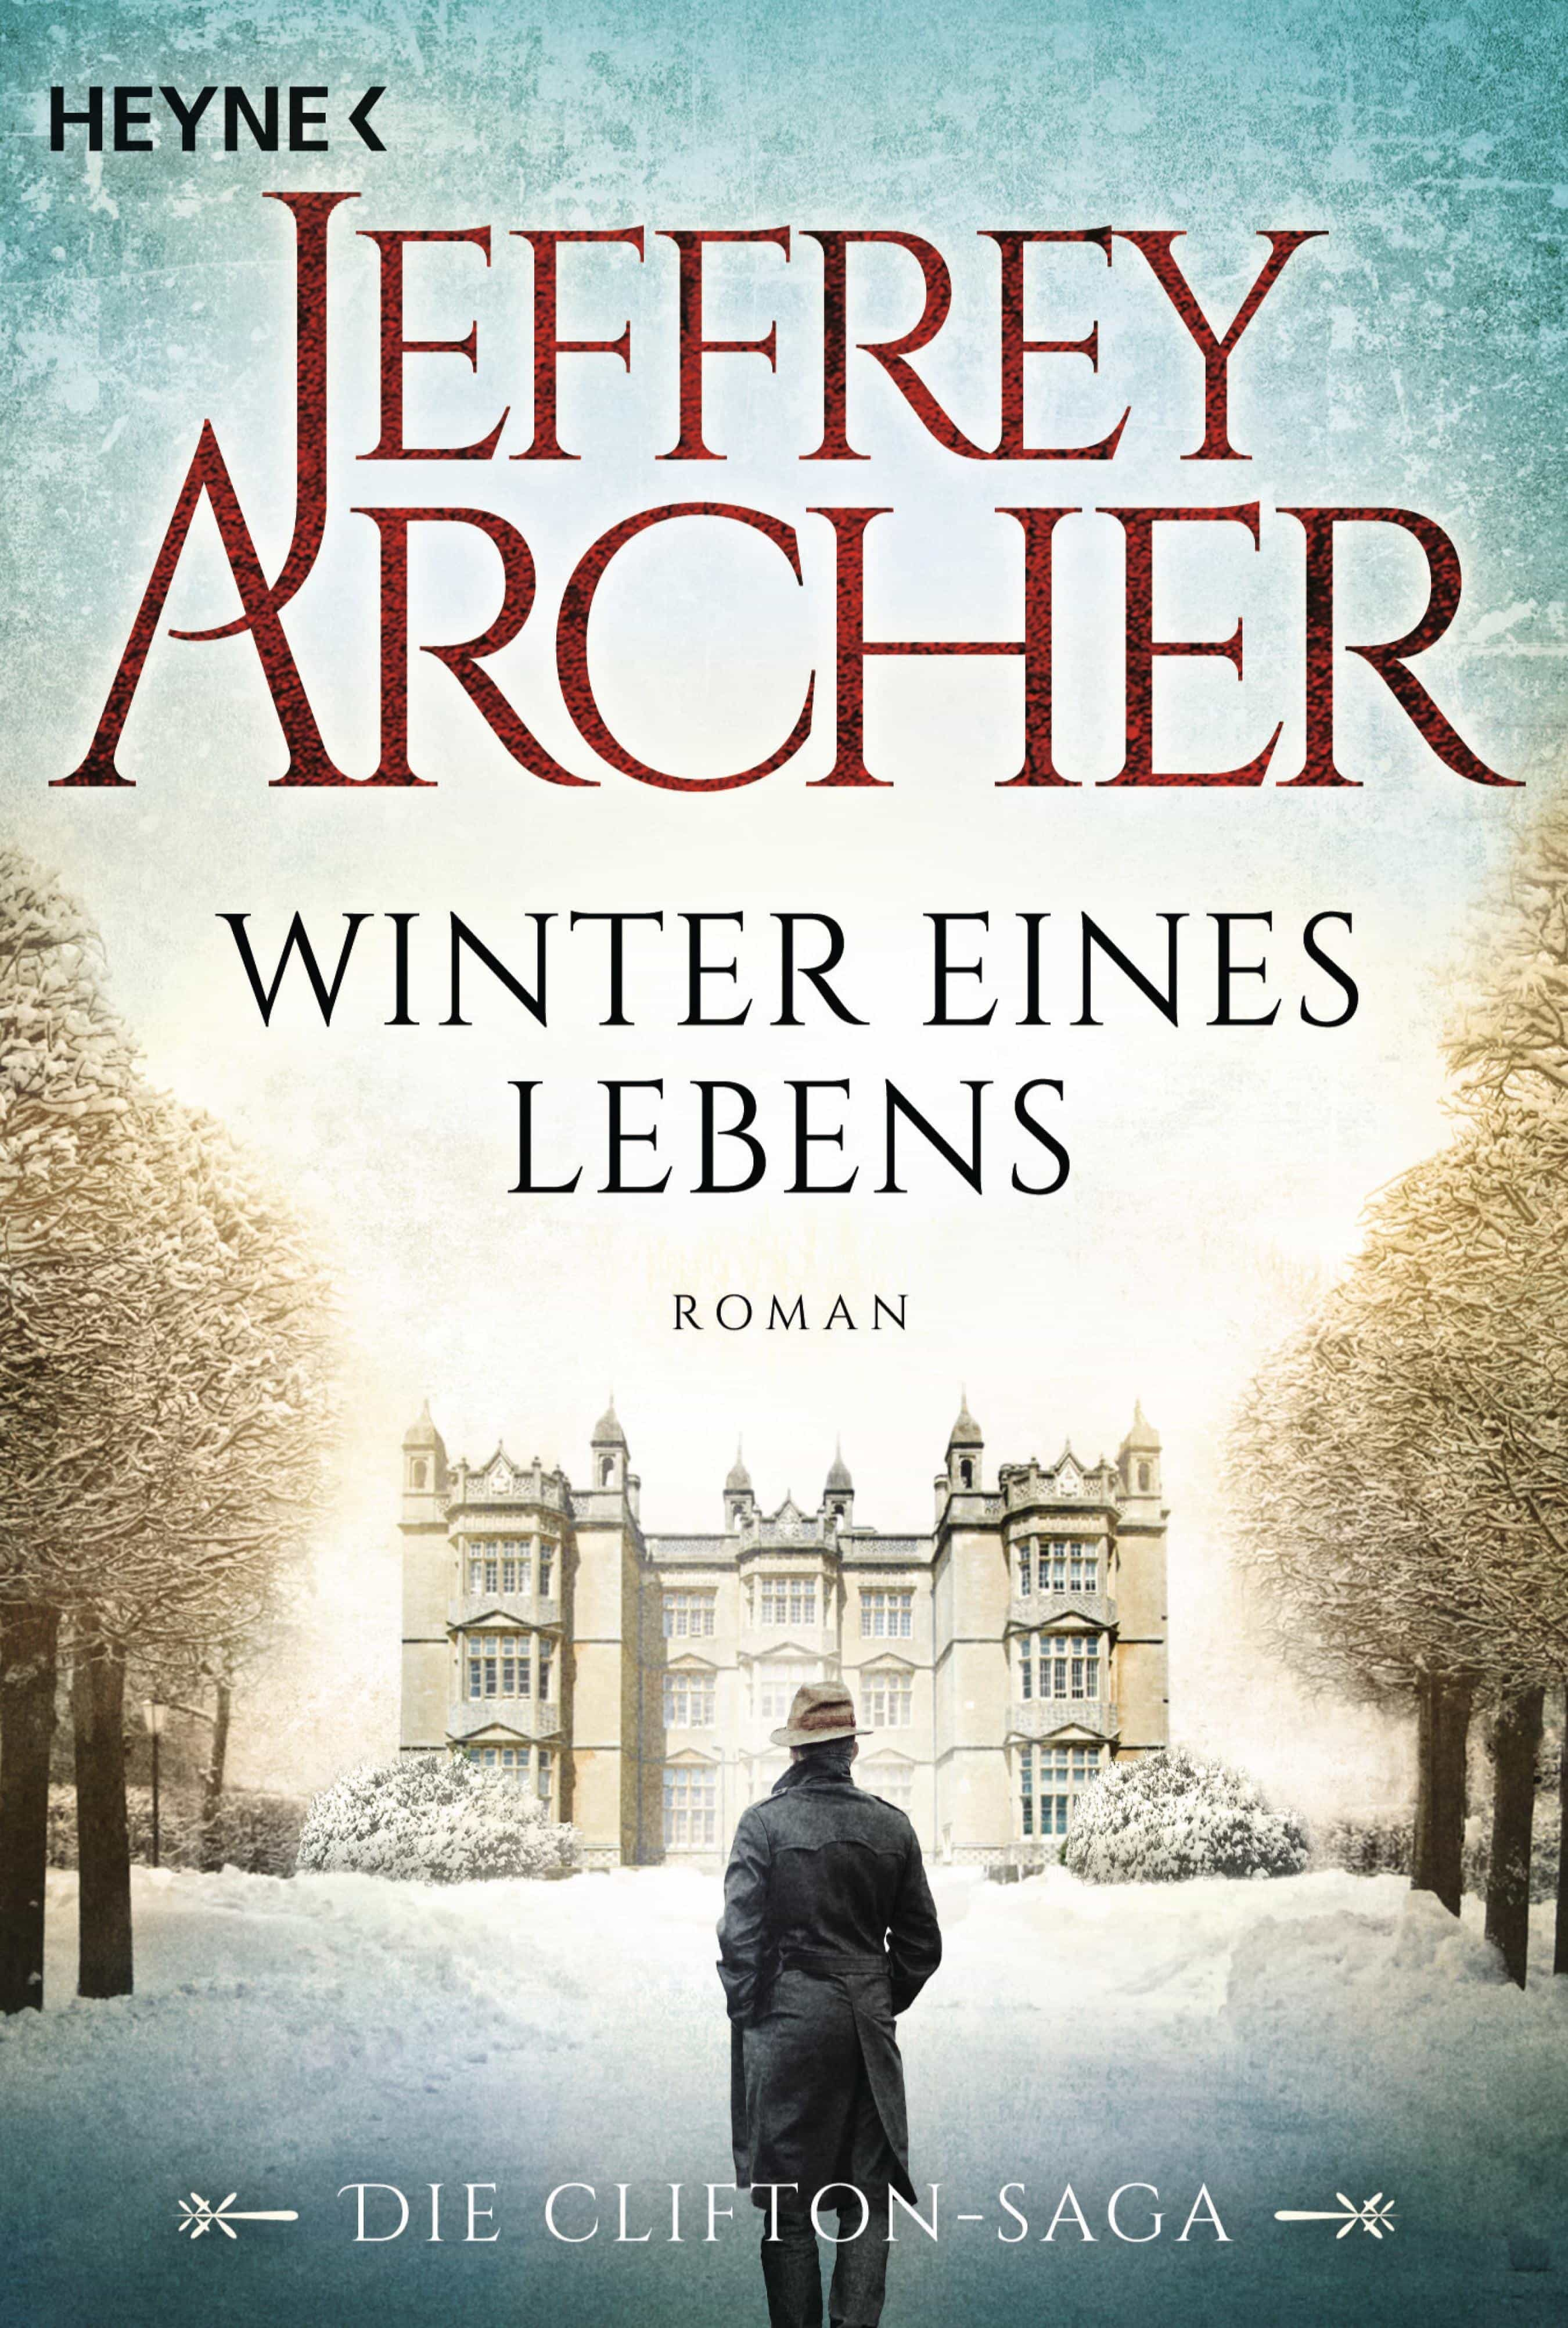 Jeffrey Archer Libros Winter Eines Lebens Ebook Archer Jeffrey Descargar Libro Pdf O Epub 9783641204457